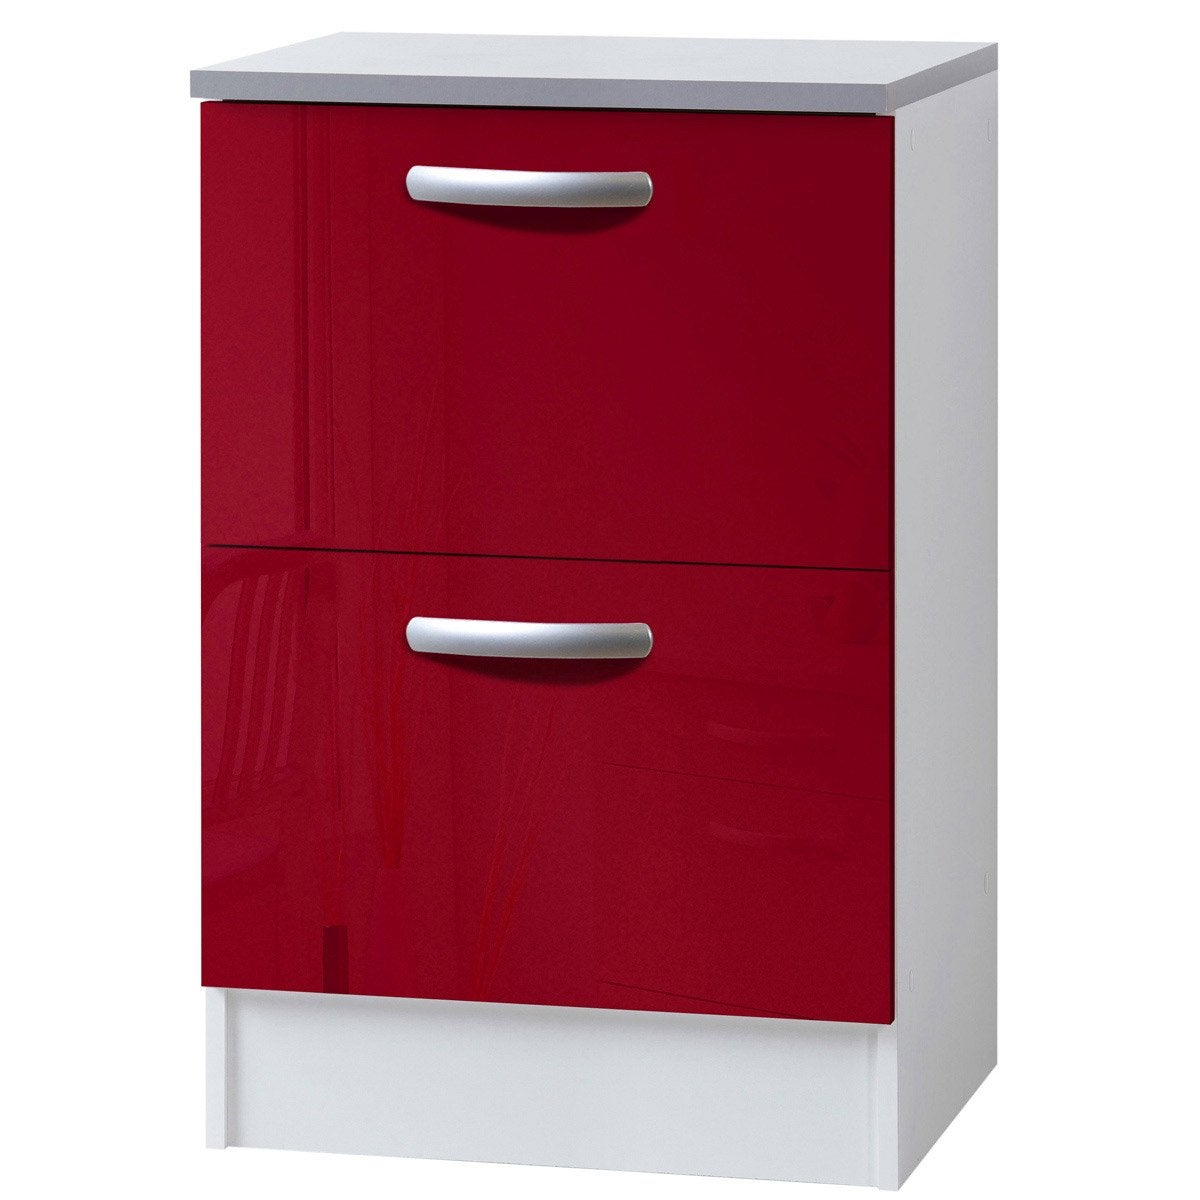 meuble de cuisine bas 2 tiroirs casseroliers rouge brillant h86x l60x p60cm leroy merlin. Black Bedroom Furniture Sets. Home Design Ideas